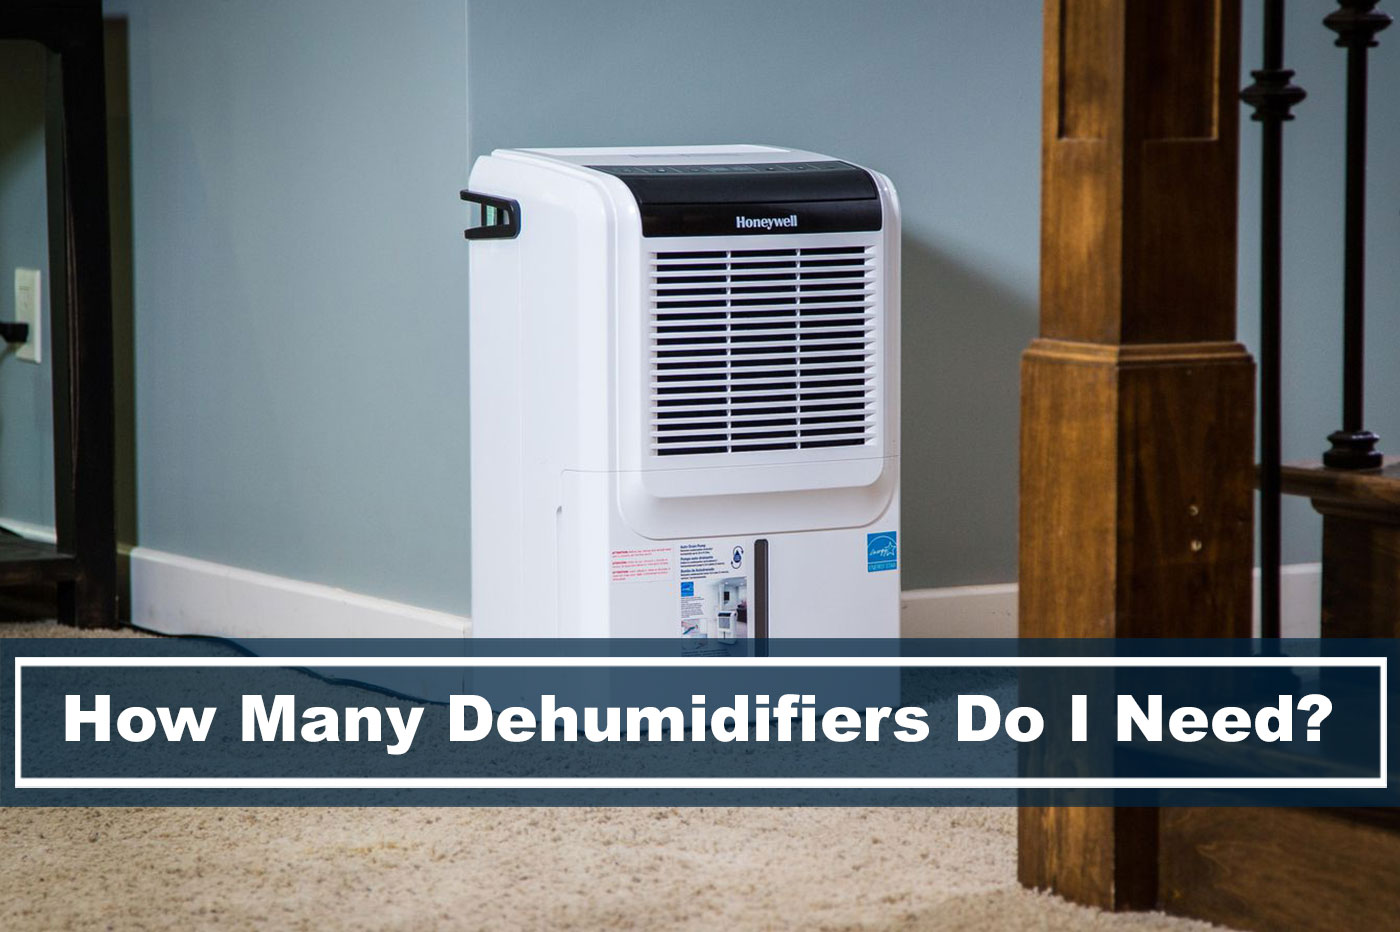 how many dehumidifier do i need